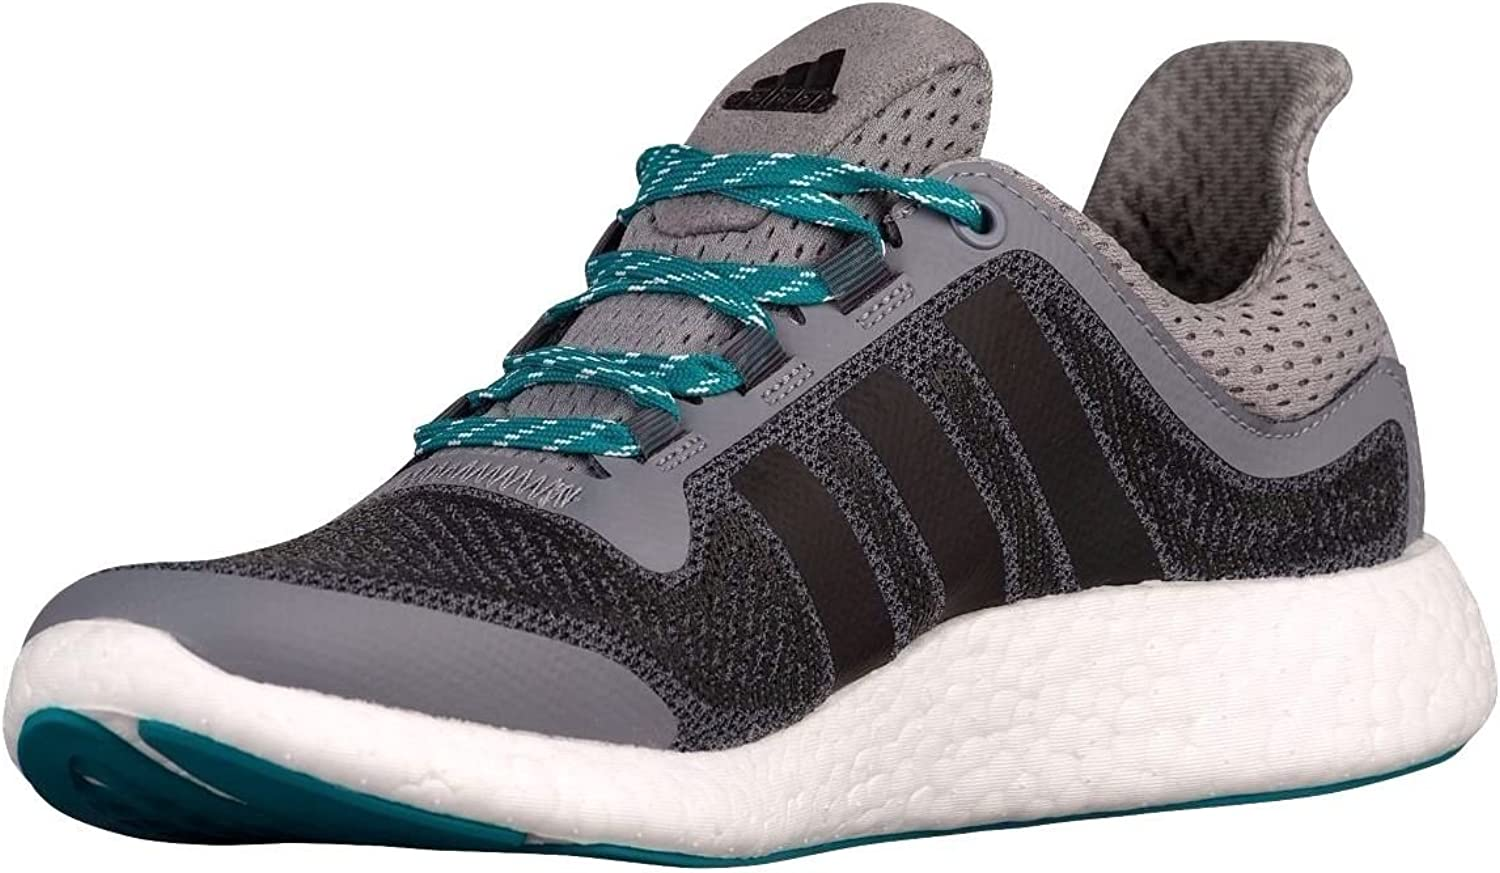 Adidas Pureboost 2 Mens Running Trainers Sneakers shoes